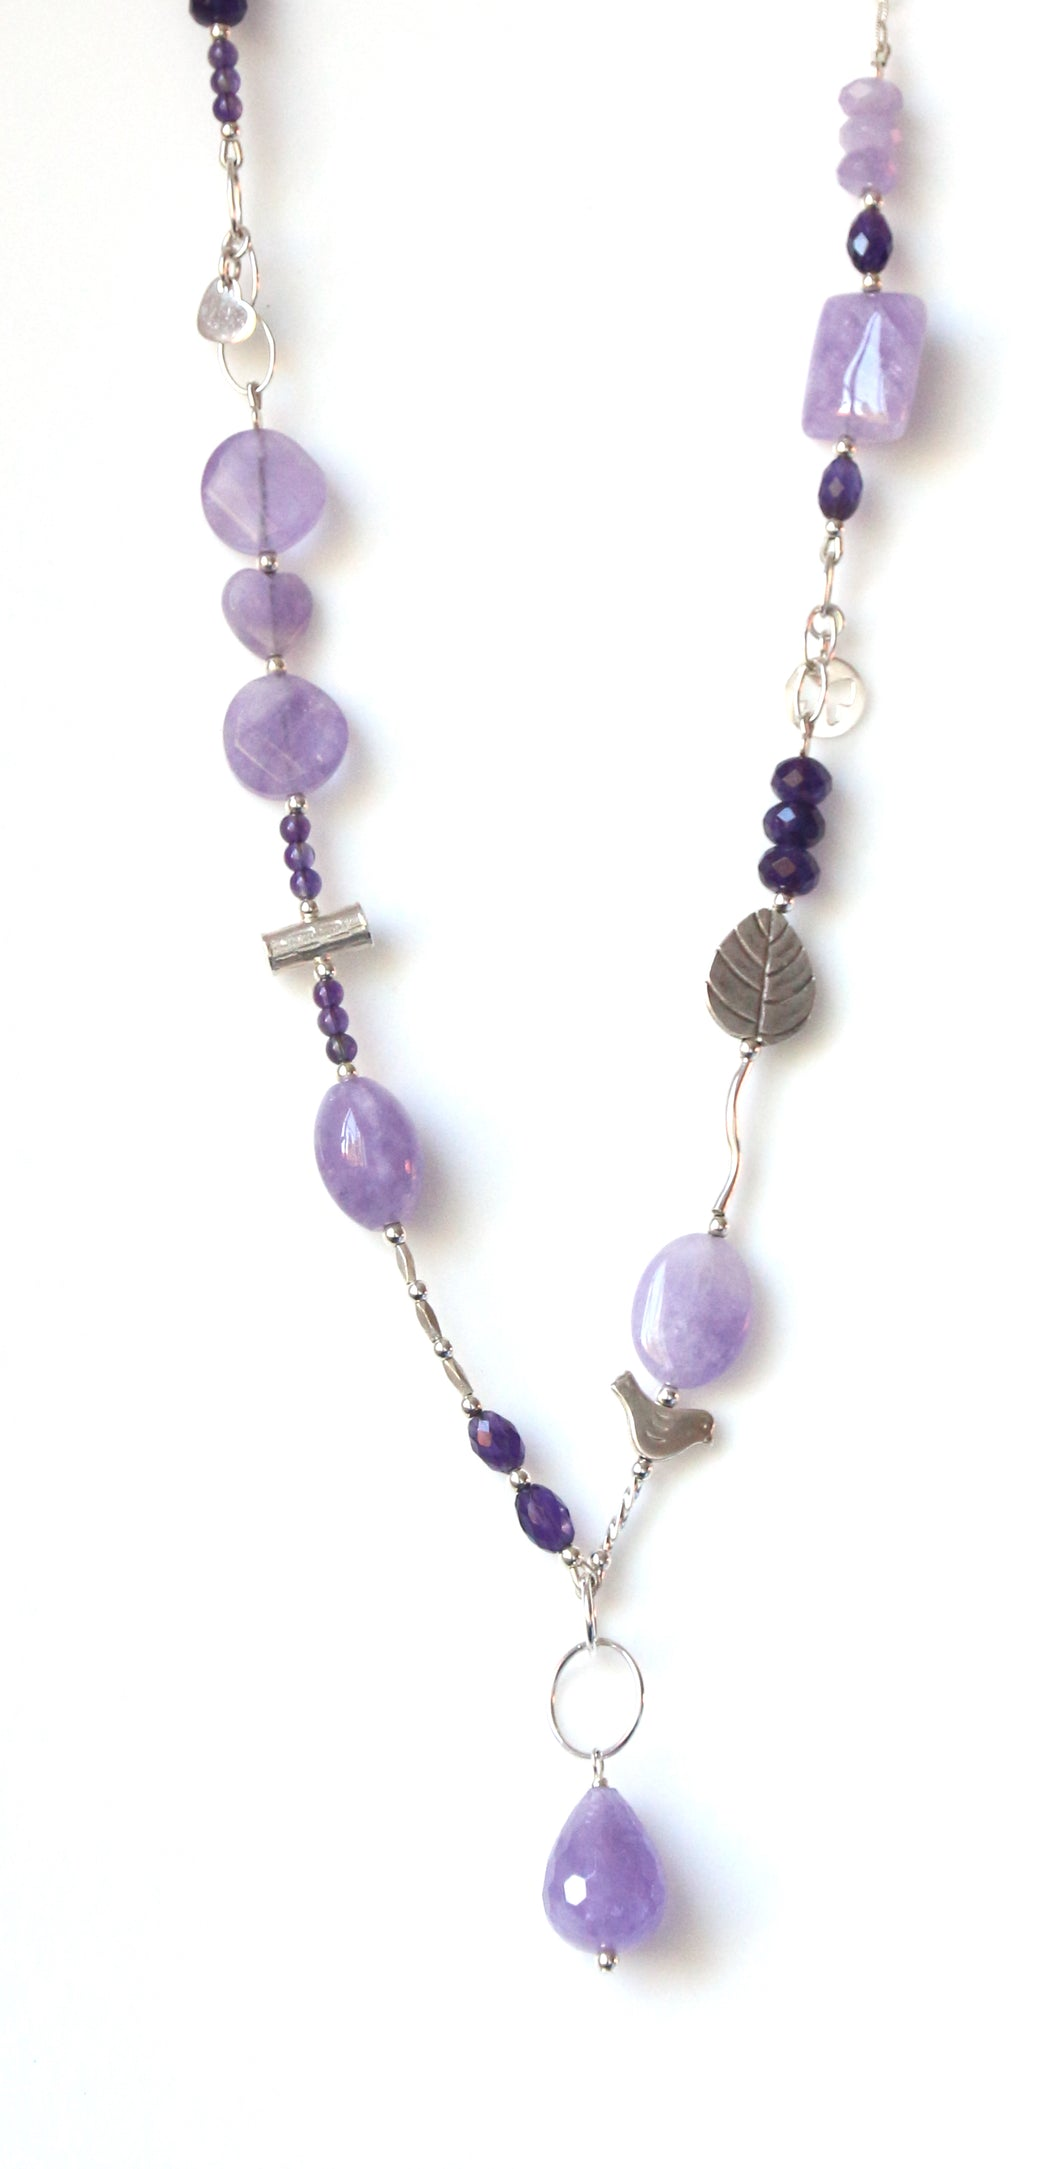 Australian Handmade Purple Necklace with Light and Dark Amethyst and Sterling Silver